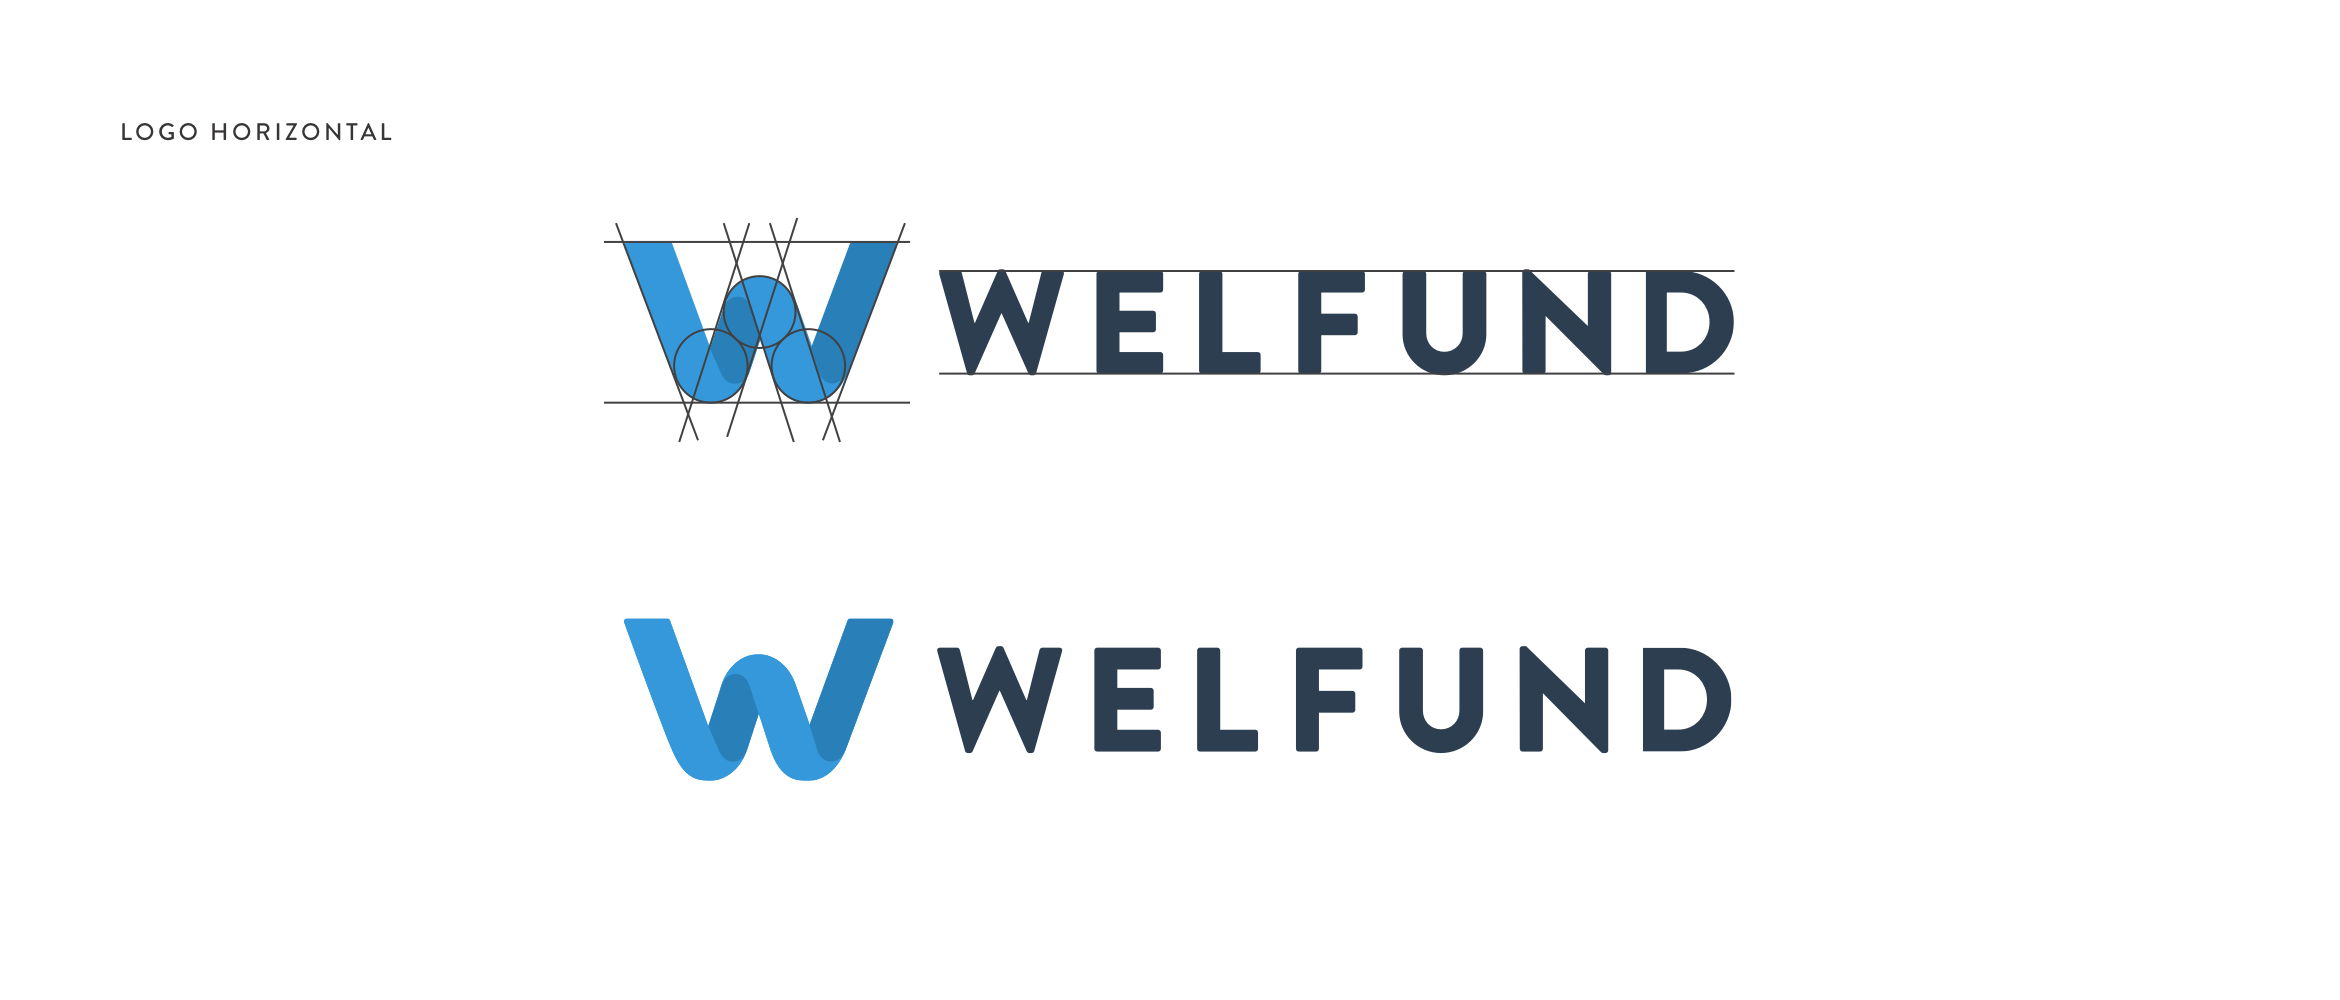 WELFUND_FULL_1170x500_02